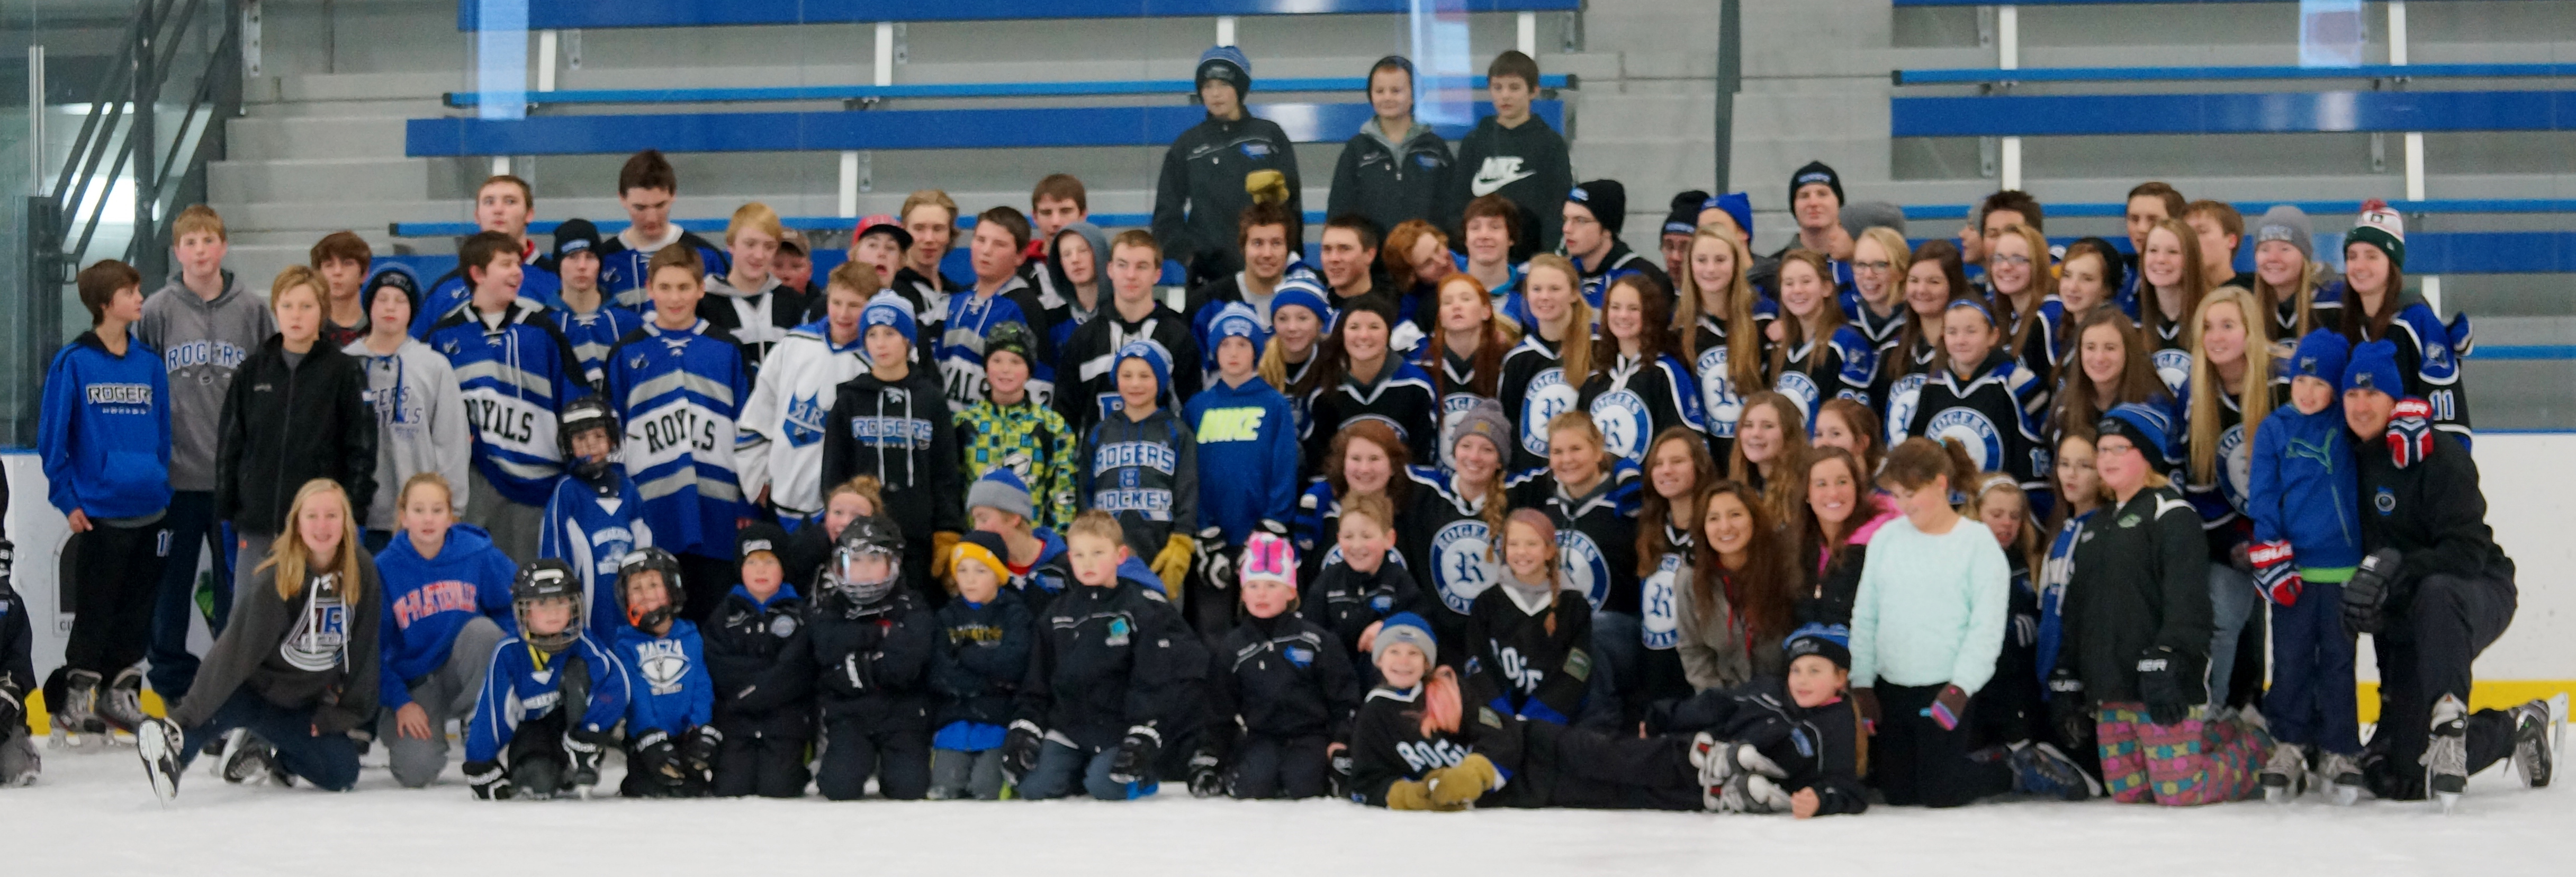 2014-2015 Skate with the Royals